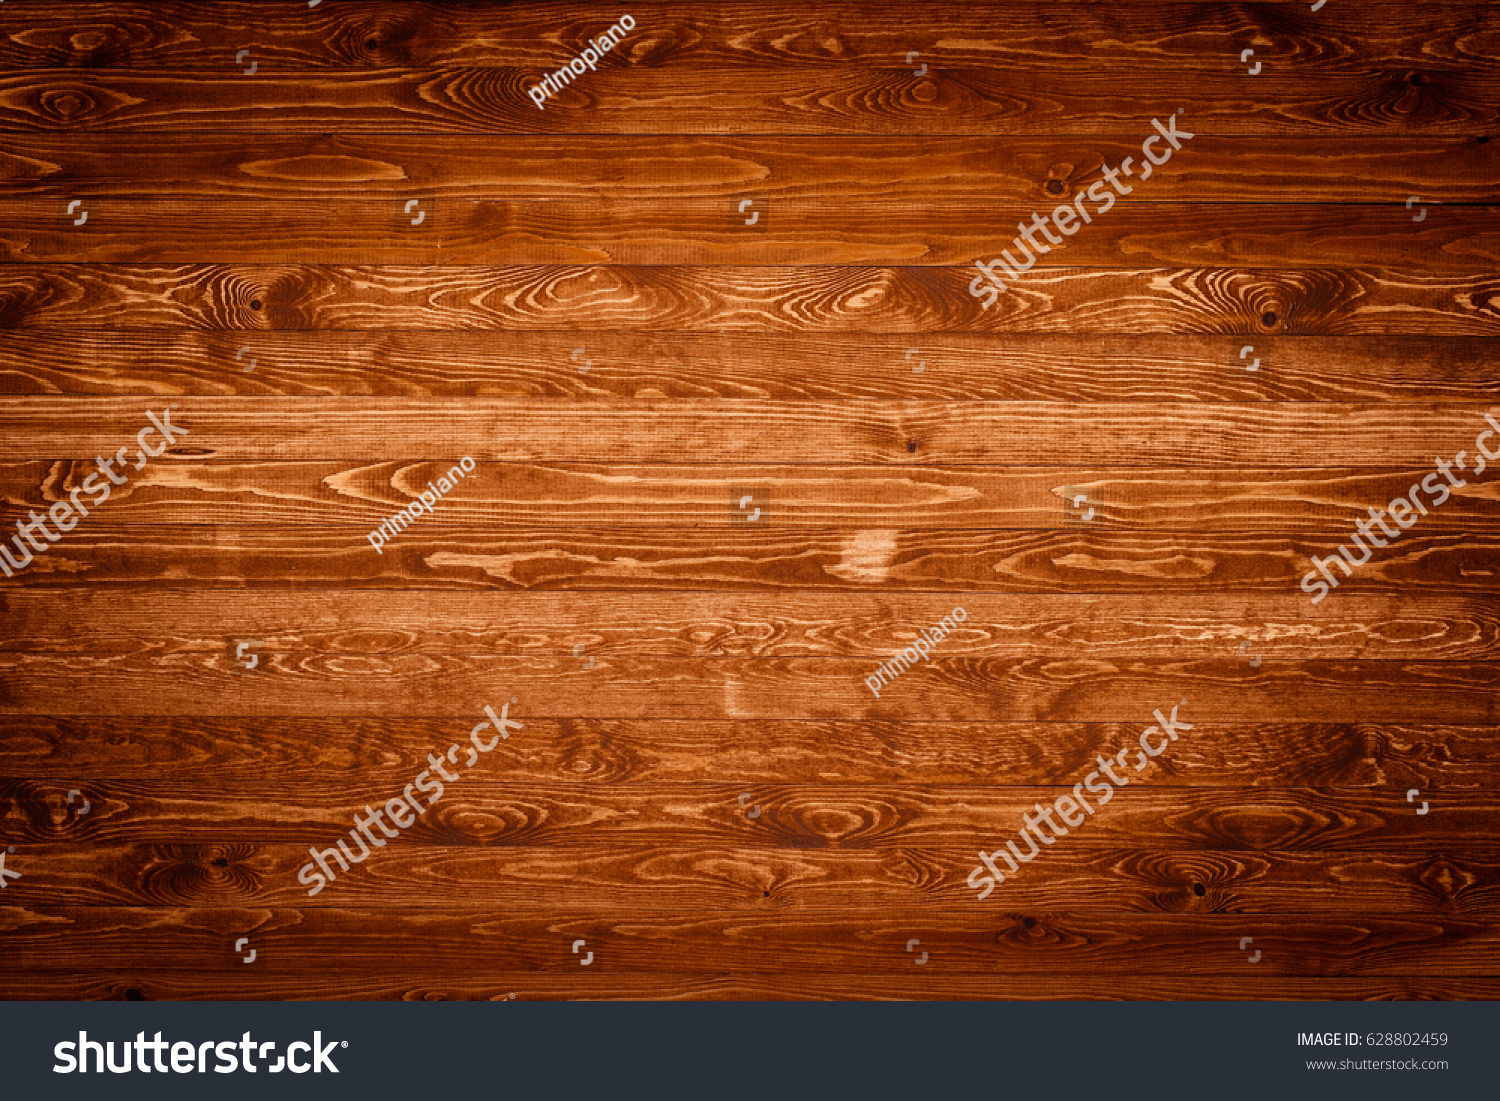 Wooden table background pattern - Vintage Wood Texture Background Surface With Old Natural Pattern Grunge Surface Rustic Wooden Table Top